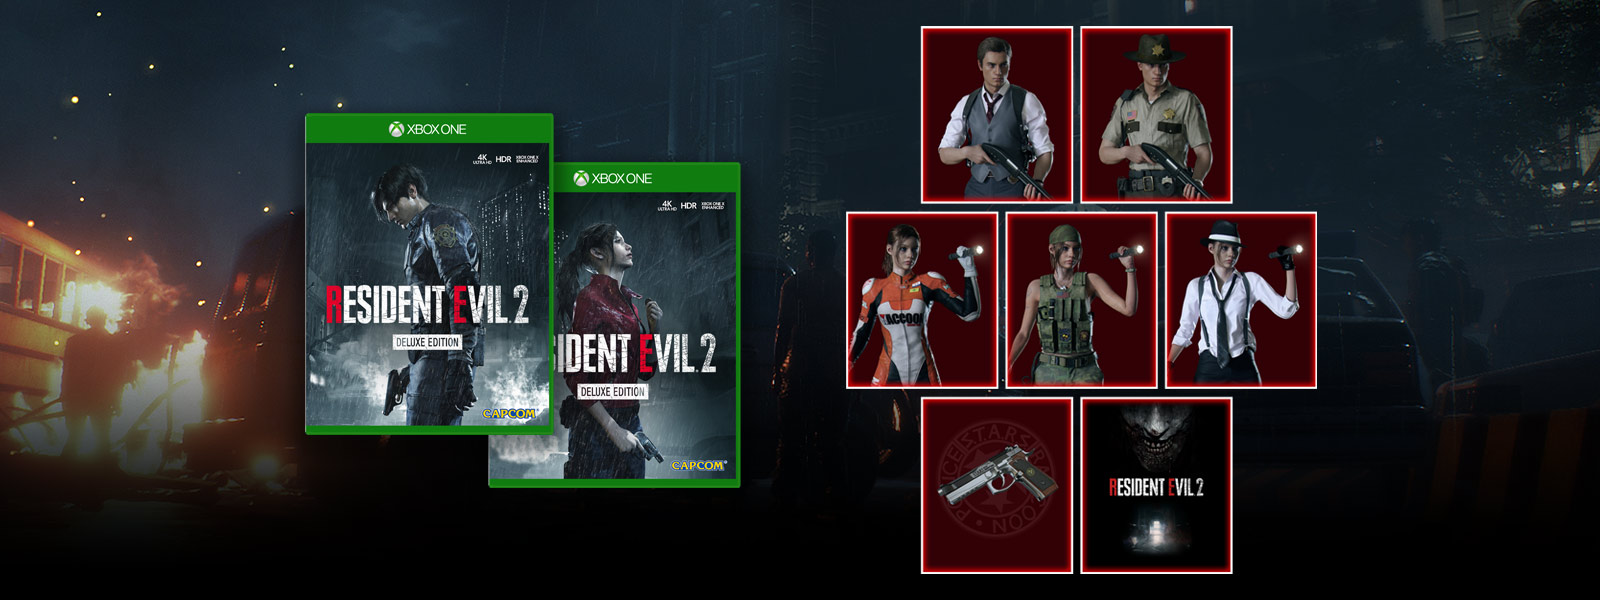 Resident Evil 2 Deluxe Edition Leon and Claire cover art next to various Deluxe Edition costumes